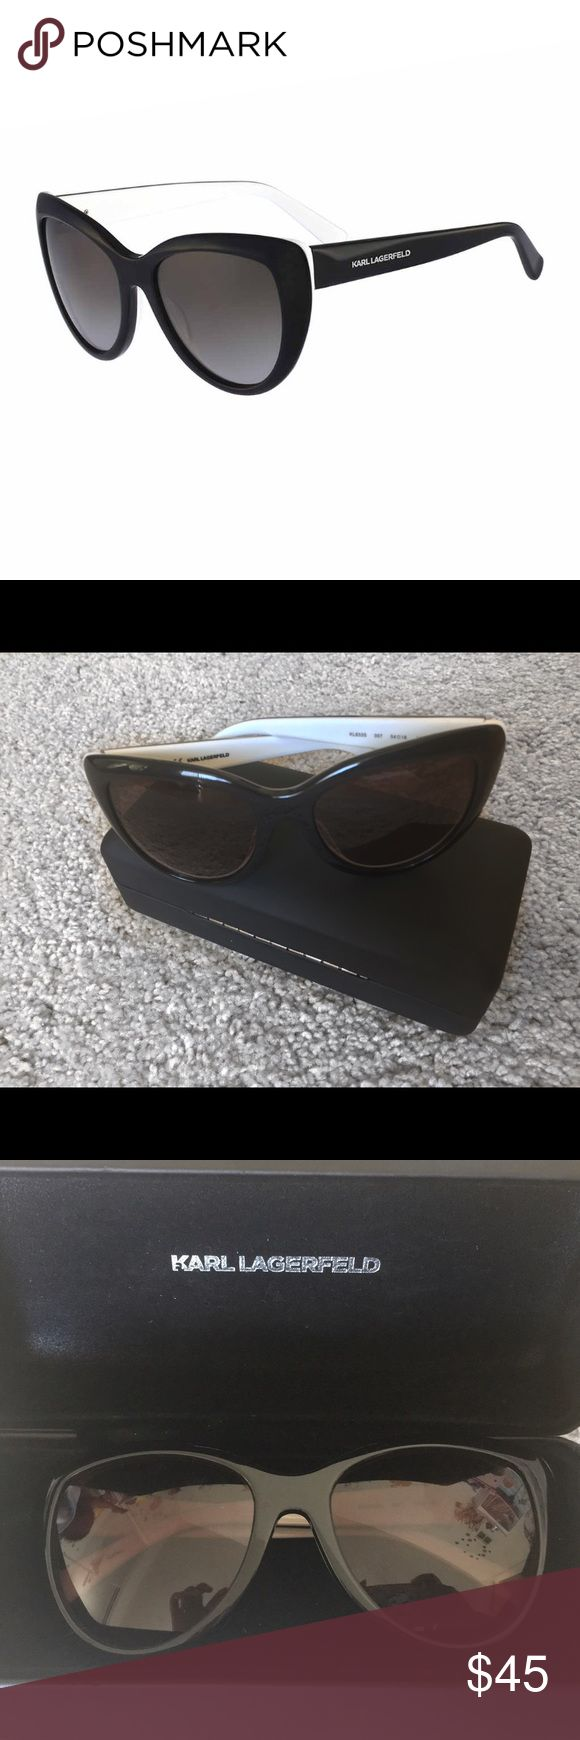 * Karl Lagerfeld * Cat eye Sunglasses with Case Cat eye Sunglasses in Black and White typical Karl Lagerfeld esthetic. It has Karl Lagerfeld written on the sides.  In Silver in the perfect size. Worn a few times in Great Condition. Karl Lagerfeld Accessories Sunglasses